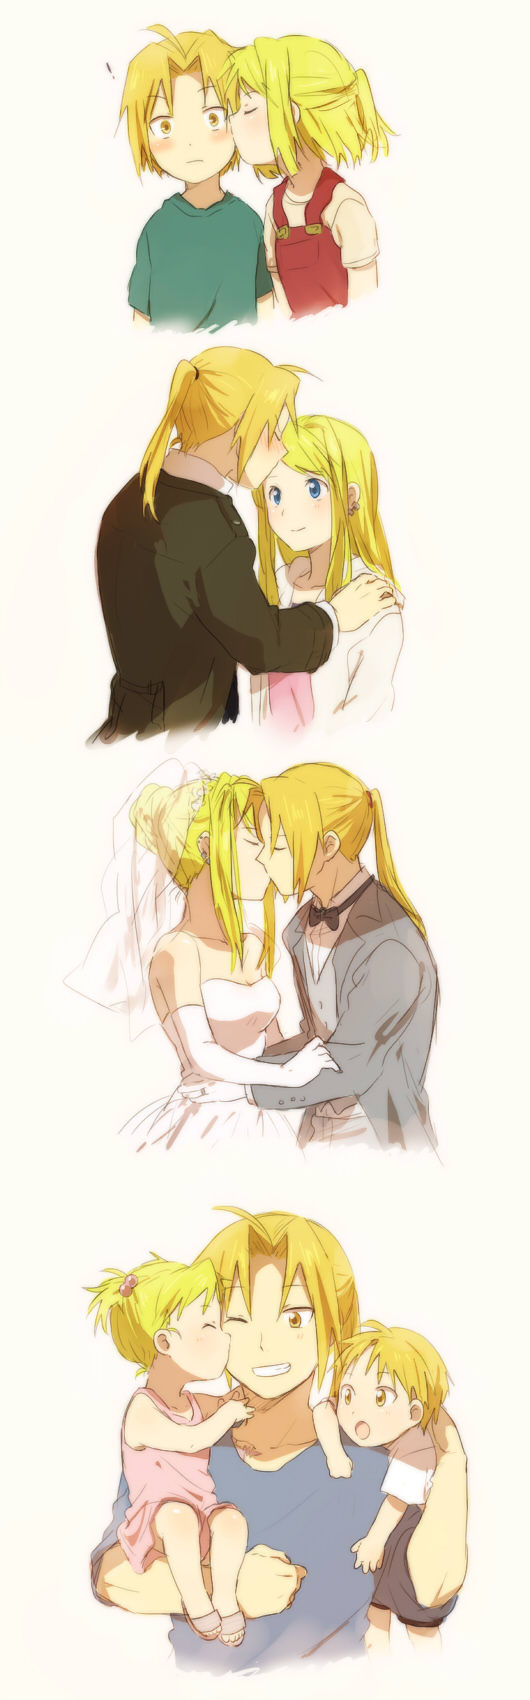 bridal_veil carrying cheek_kiss couple dress edward_elric elbow_gloves forehead_kiss fullmetal_alchemist gloves highres if_they_mated kiss ponytail riru veil wedding_dress wink winry_rockbell young